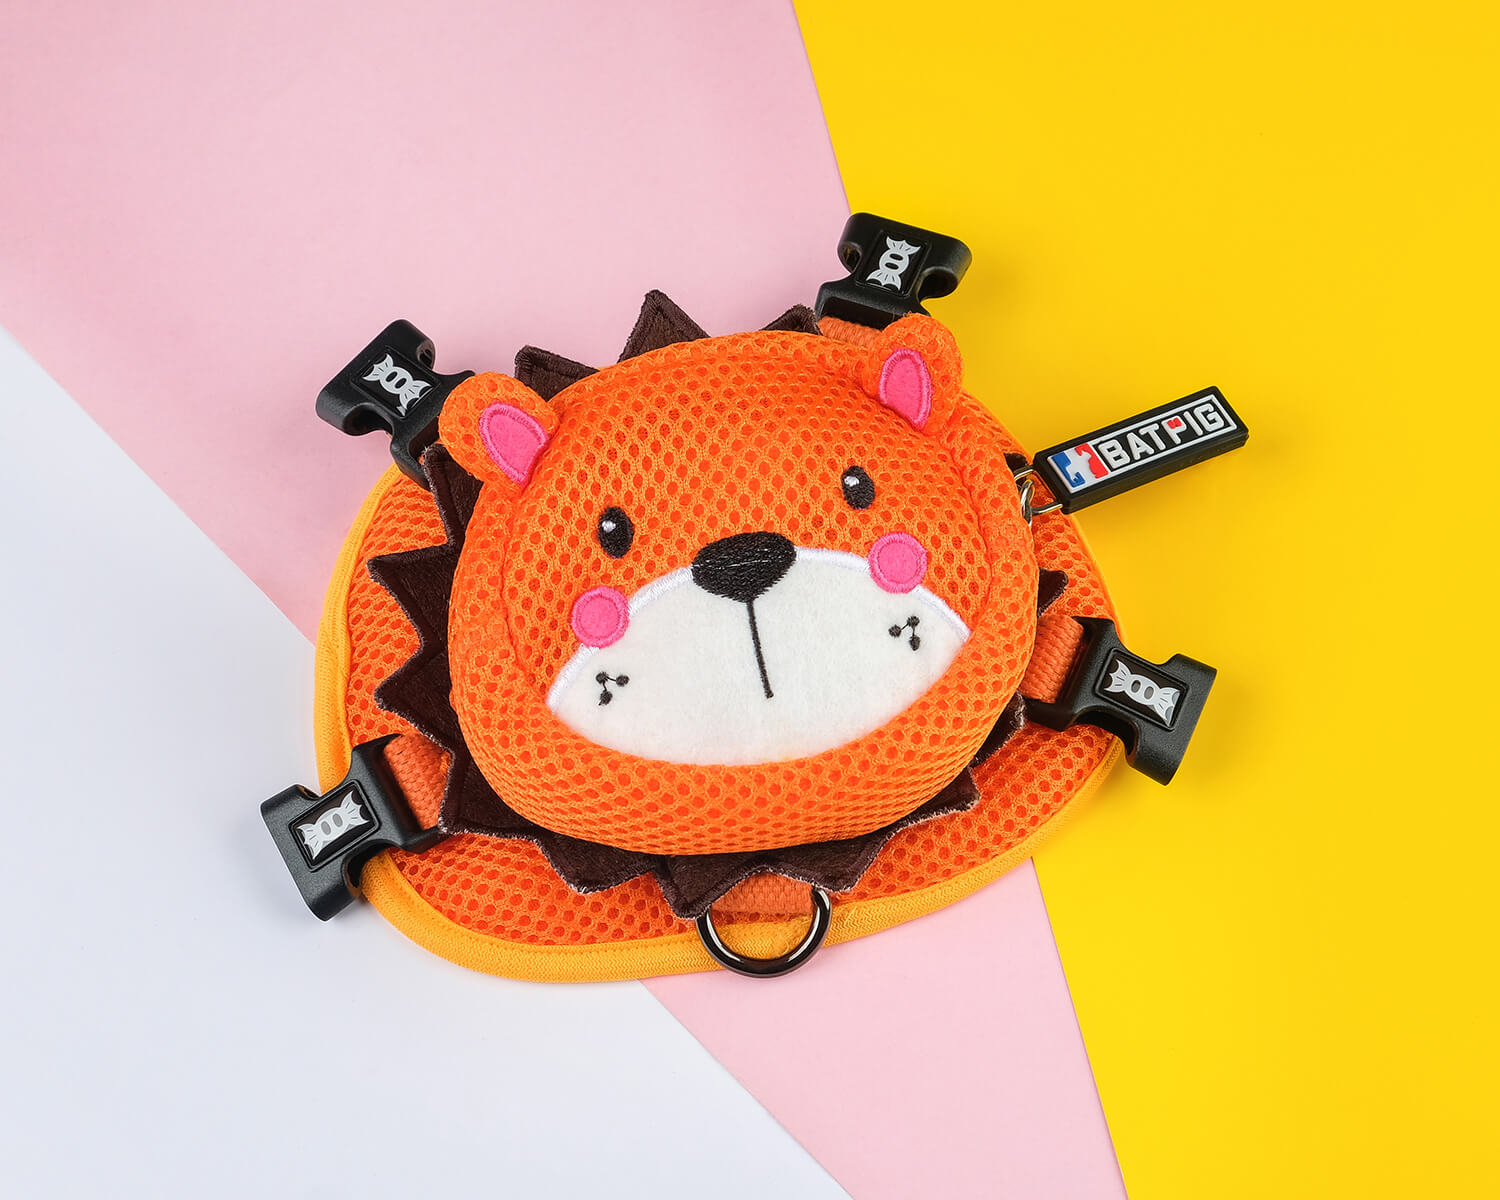 BATPIG Backpack Harness Orange Lion Collection